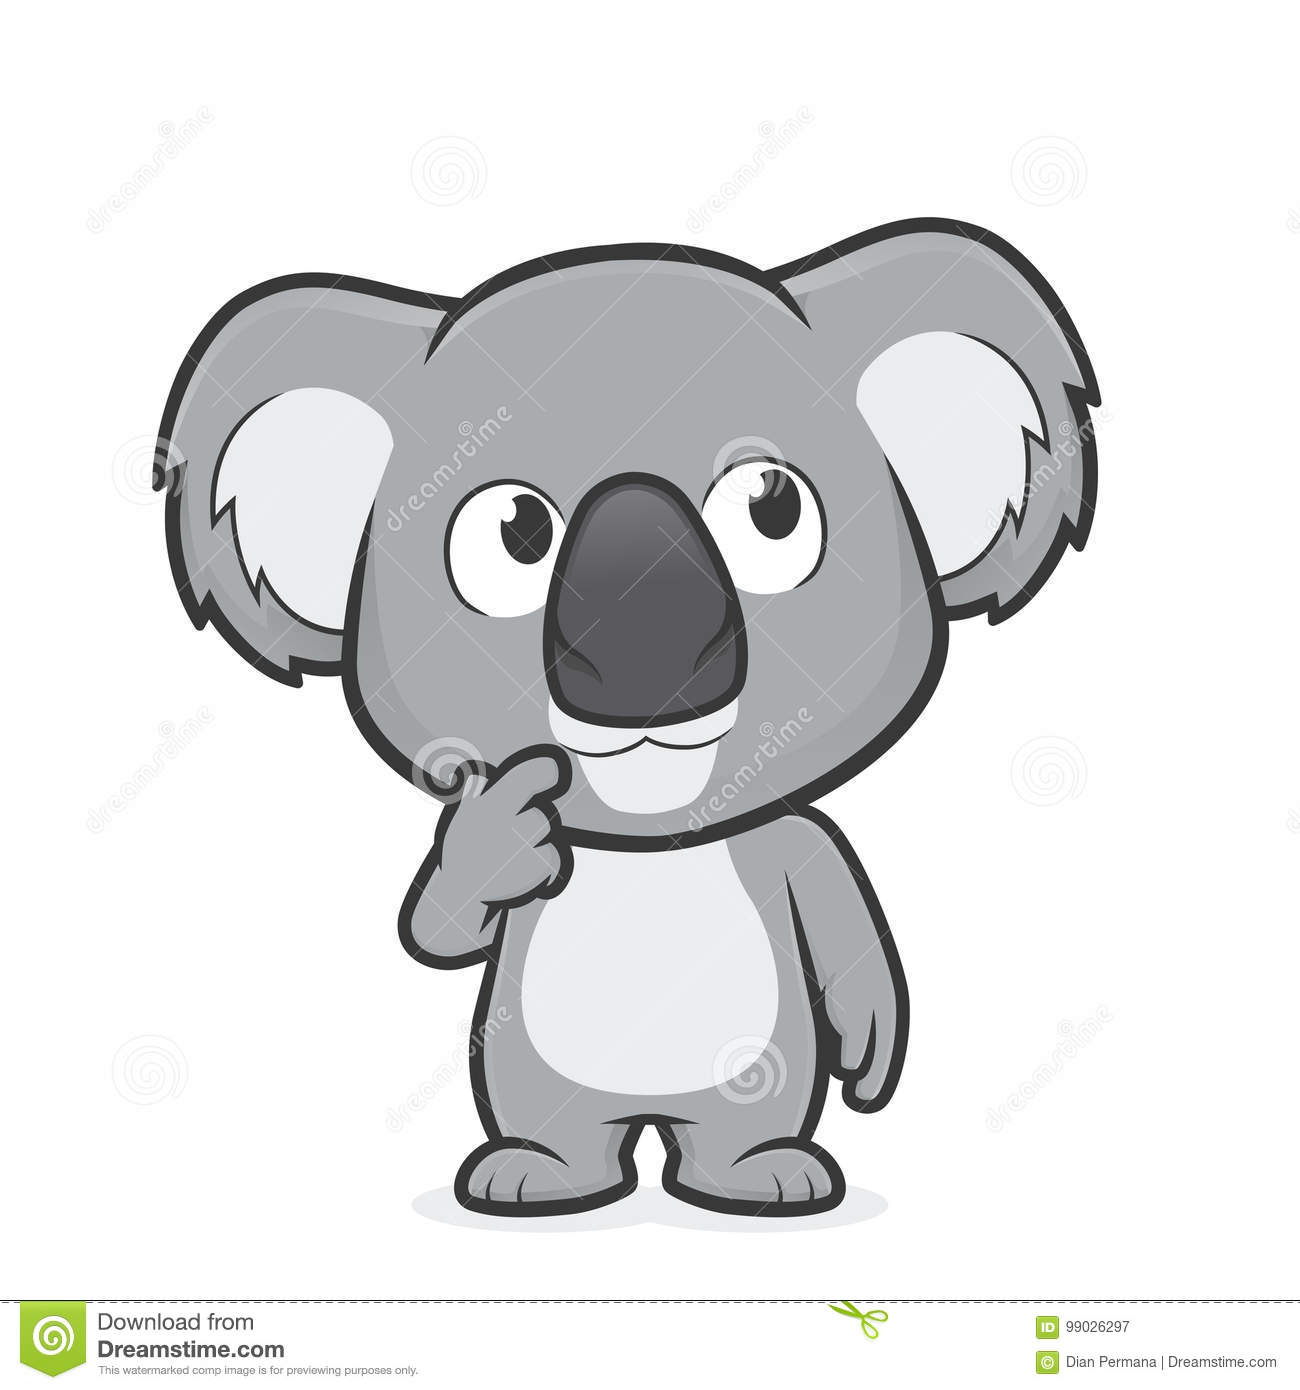 Koala in thinking gesture stock vector. Illustration of drawing.